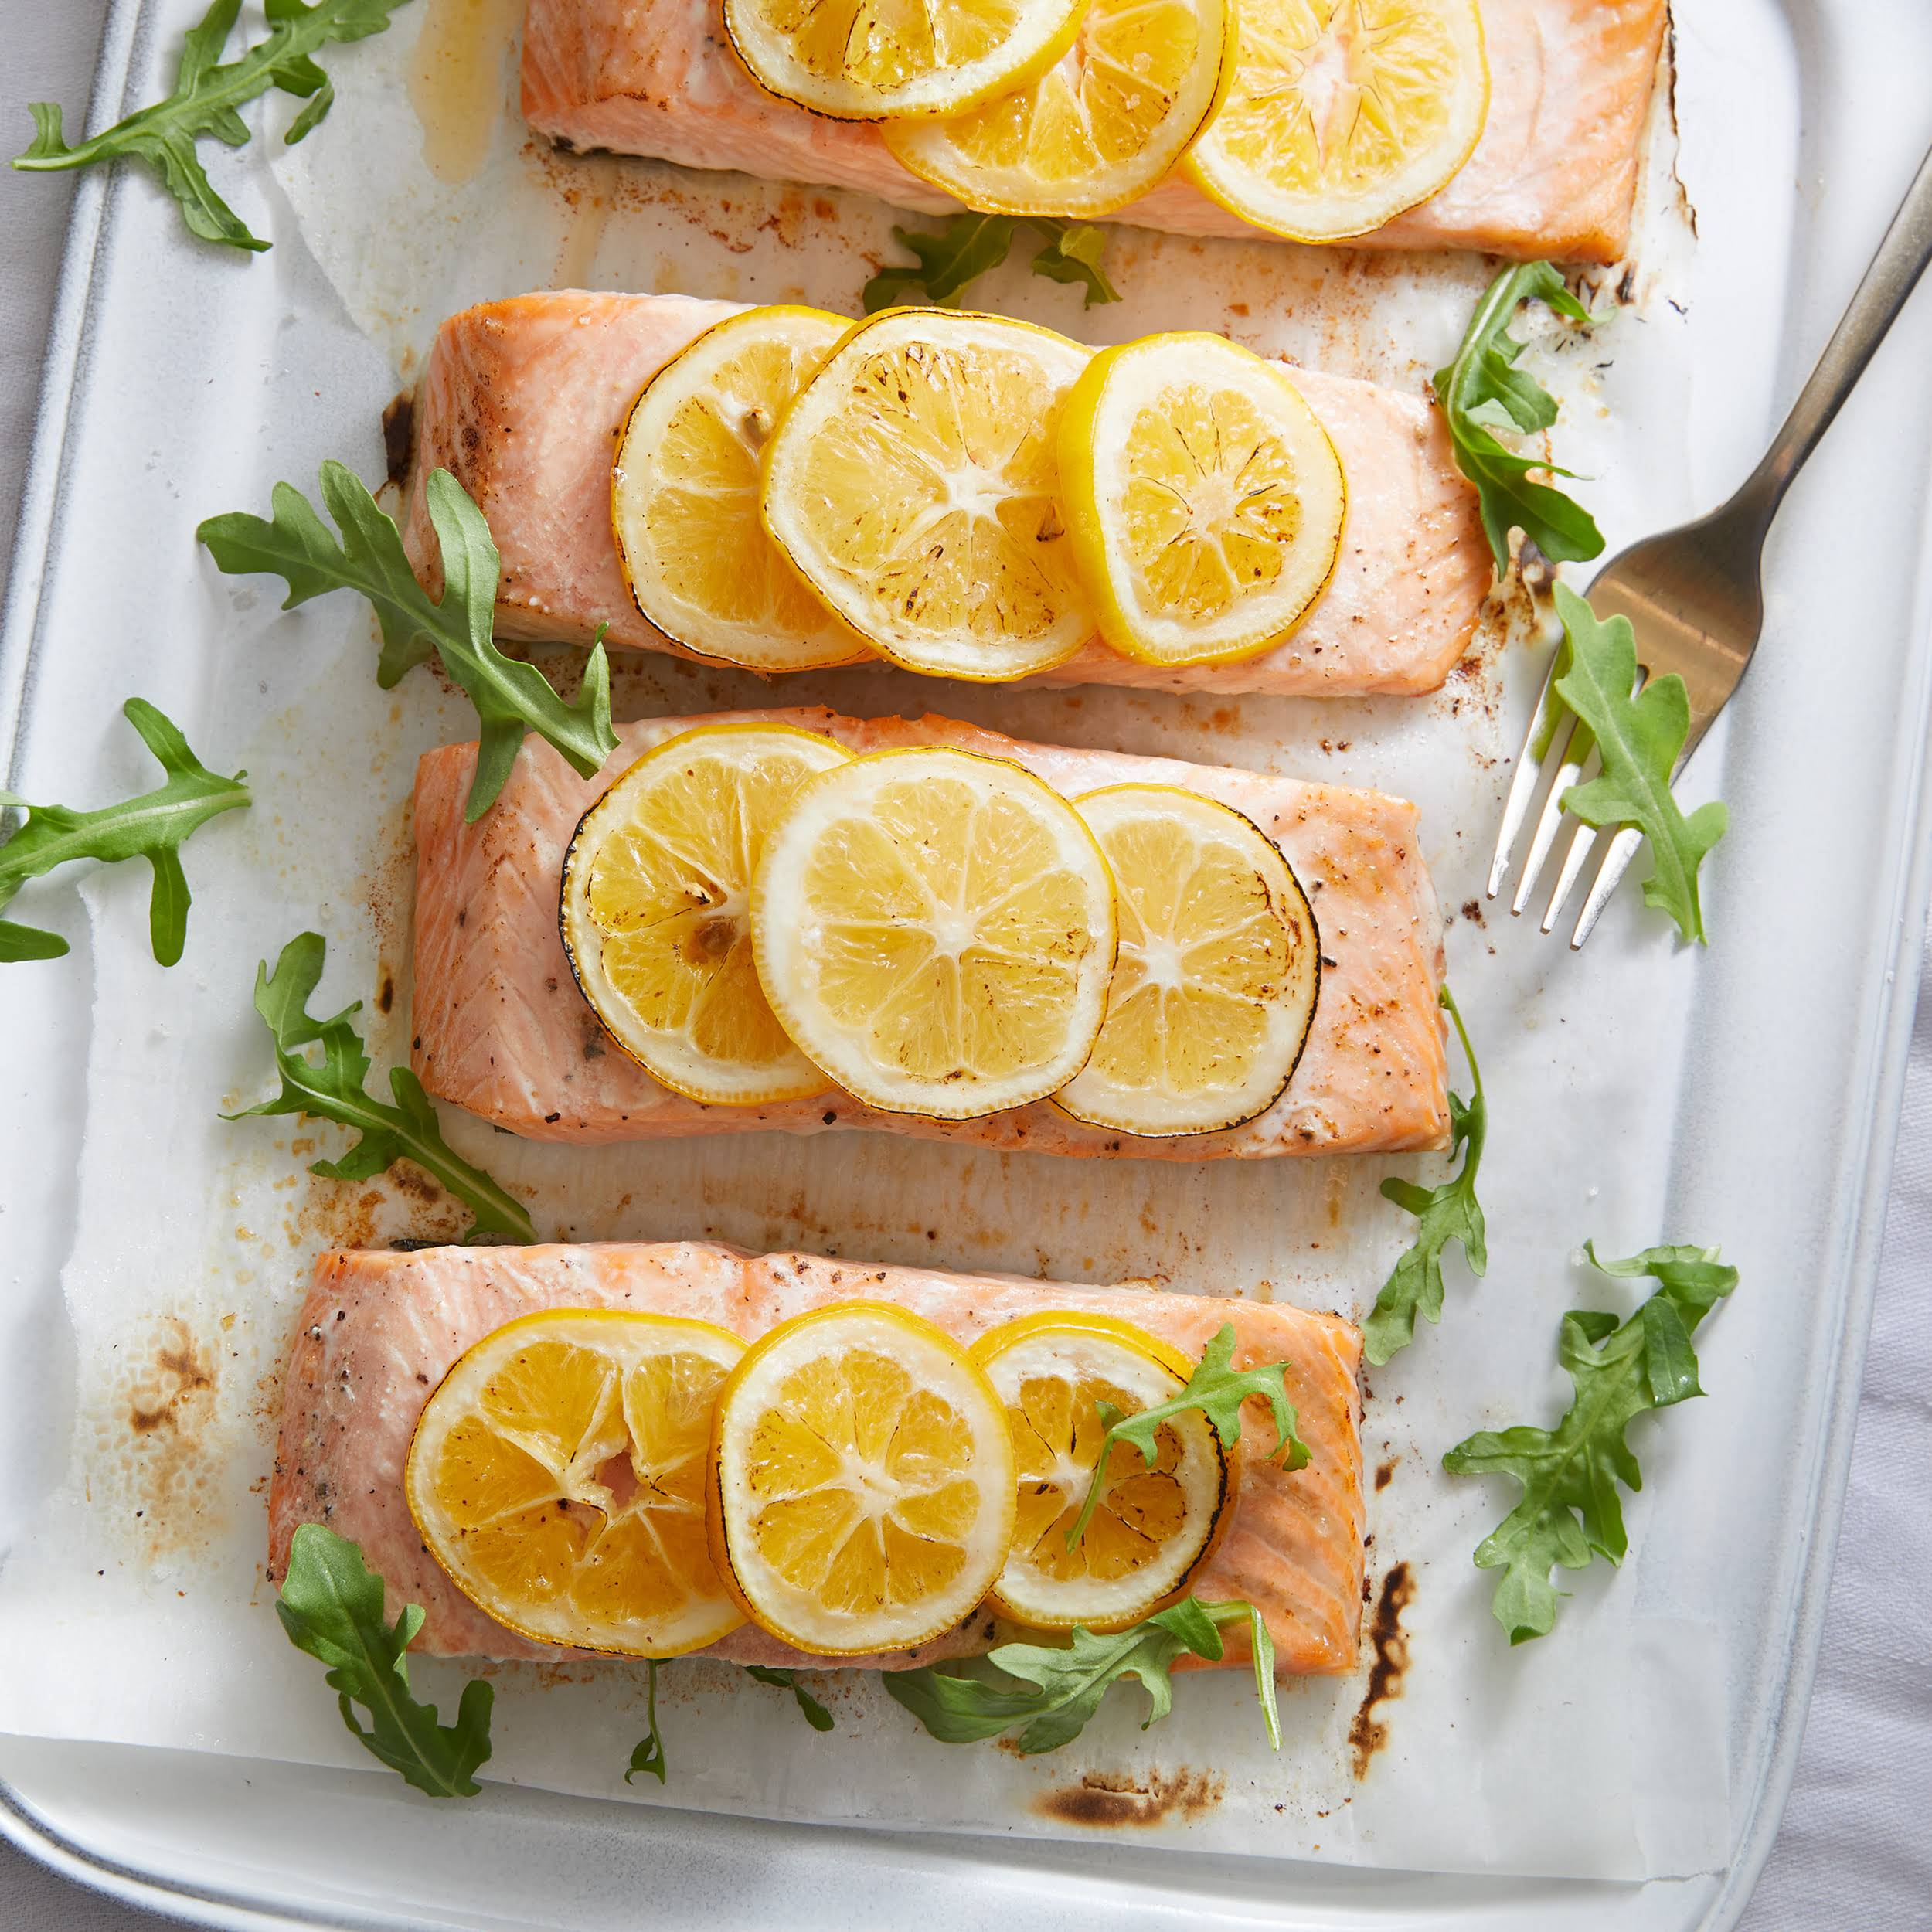 15-Minute Baked Salmon with Lemon